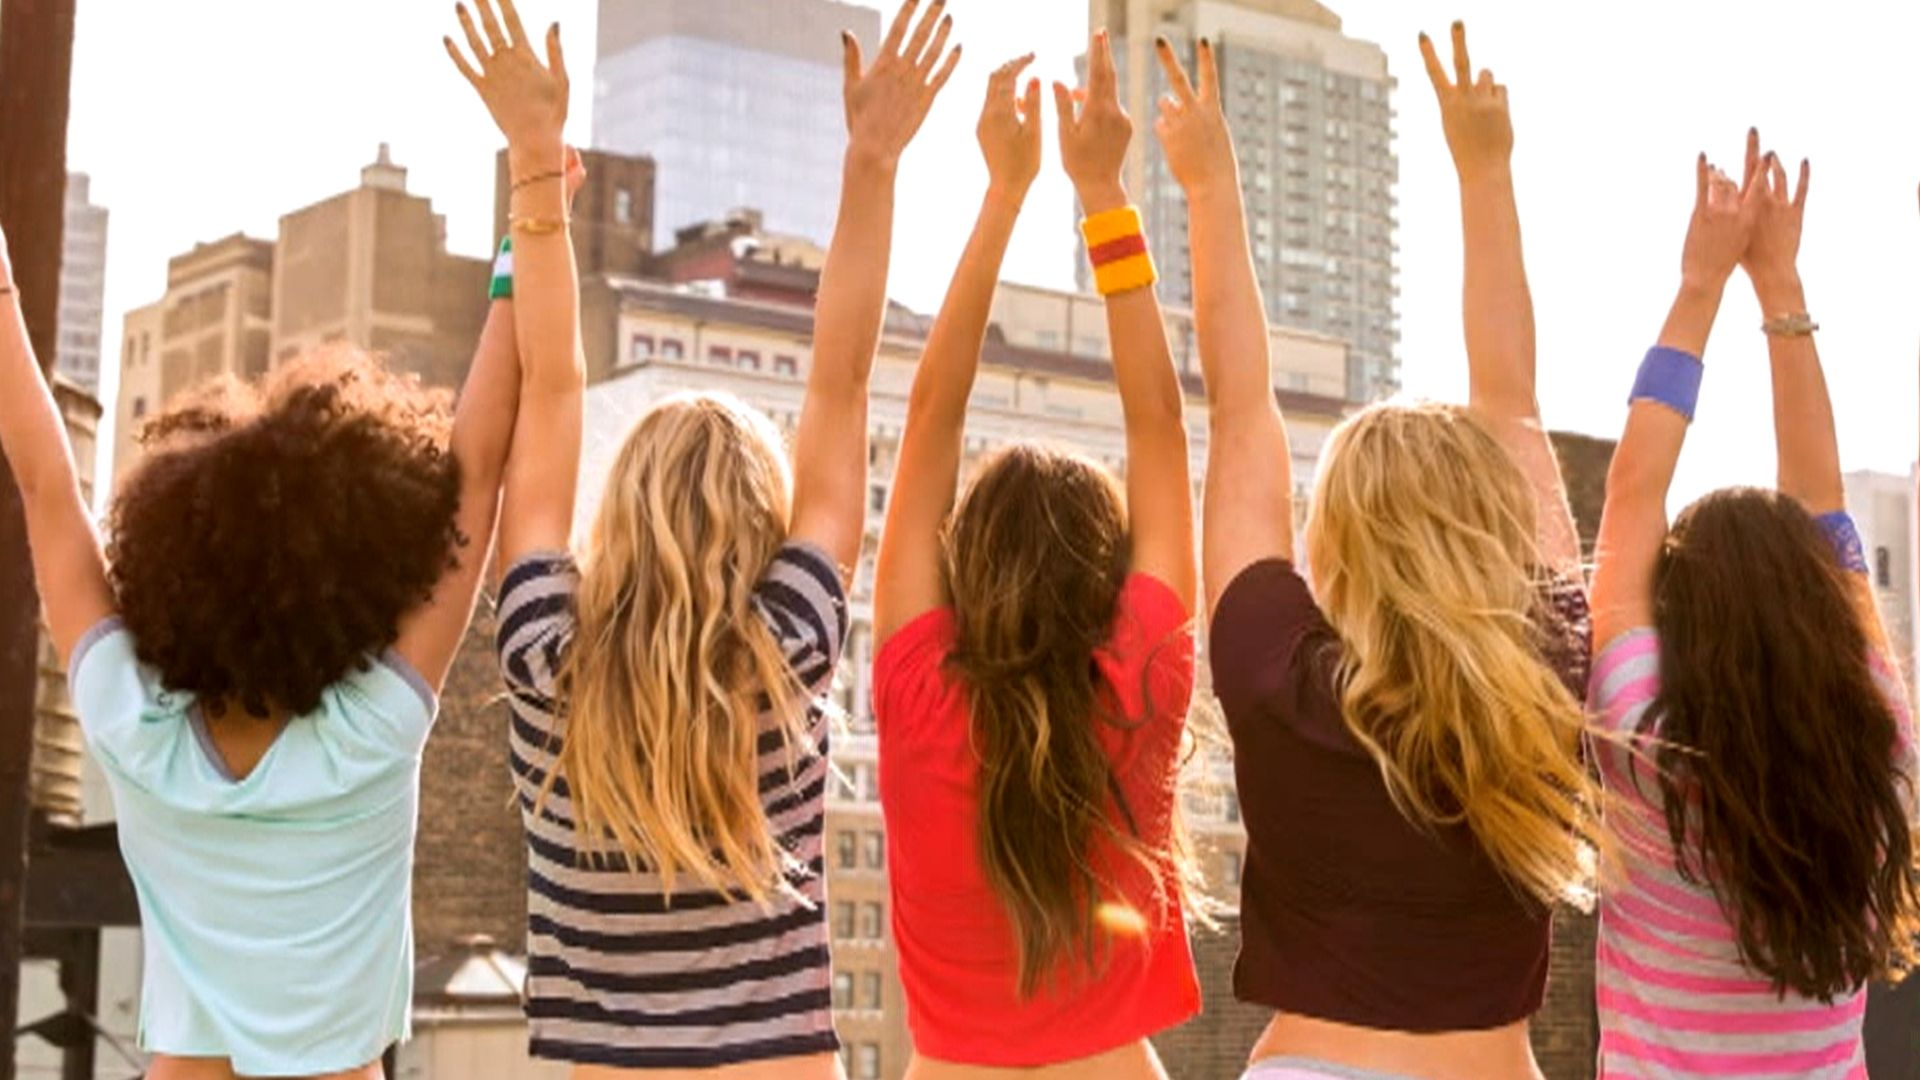 'We celebrate each girl's real beauty': Aerie's un-airbrushed ads have women buying